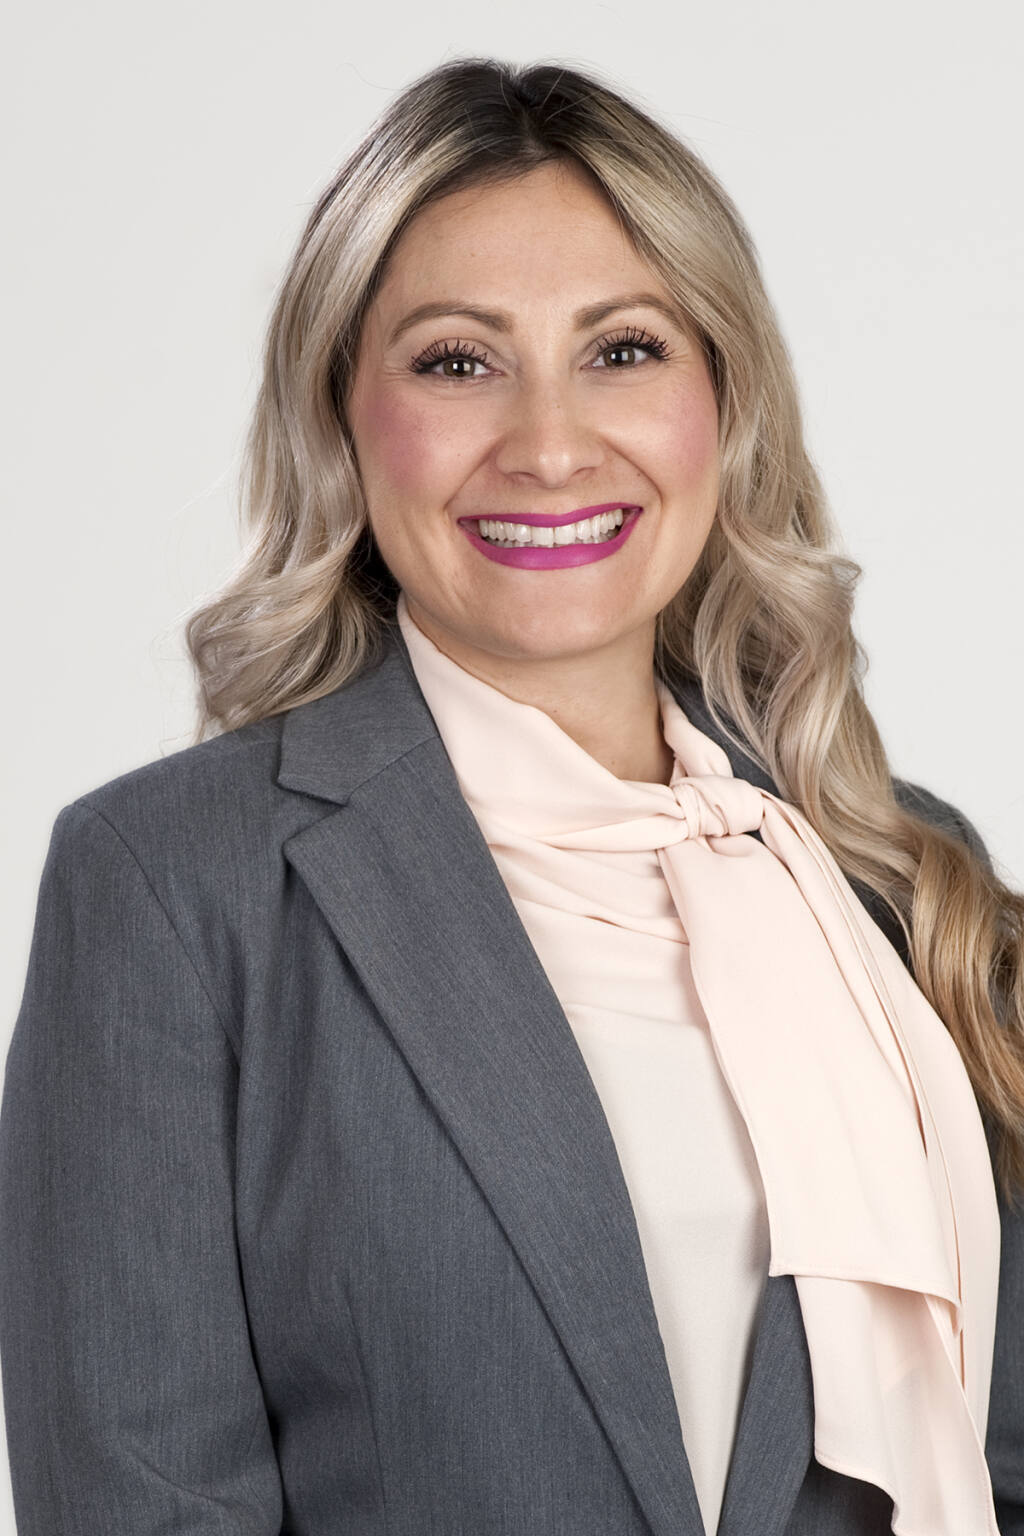 Gladys Milligan, 39, branch experience manager, Redwood Credit Union, American Canyon, is a North Bay Business Journal 2021 Forty Under 40 winner.